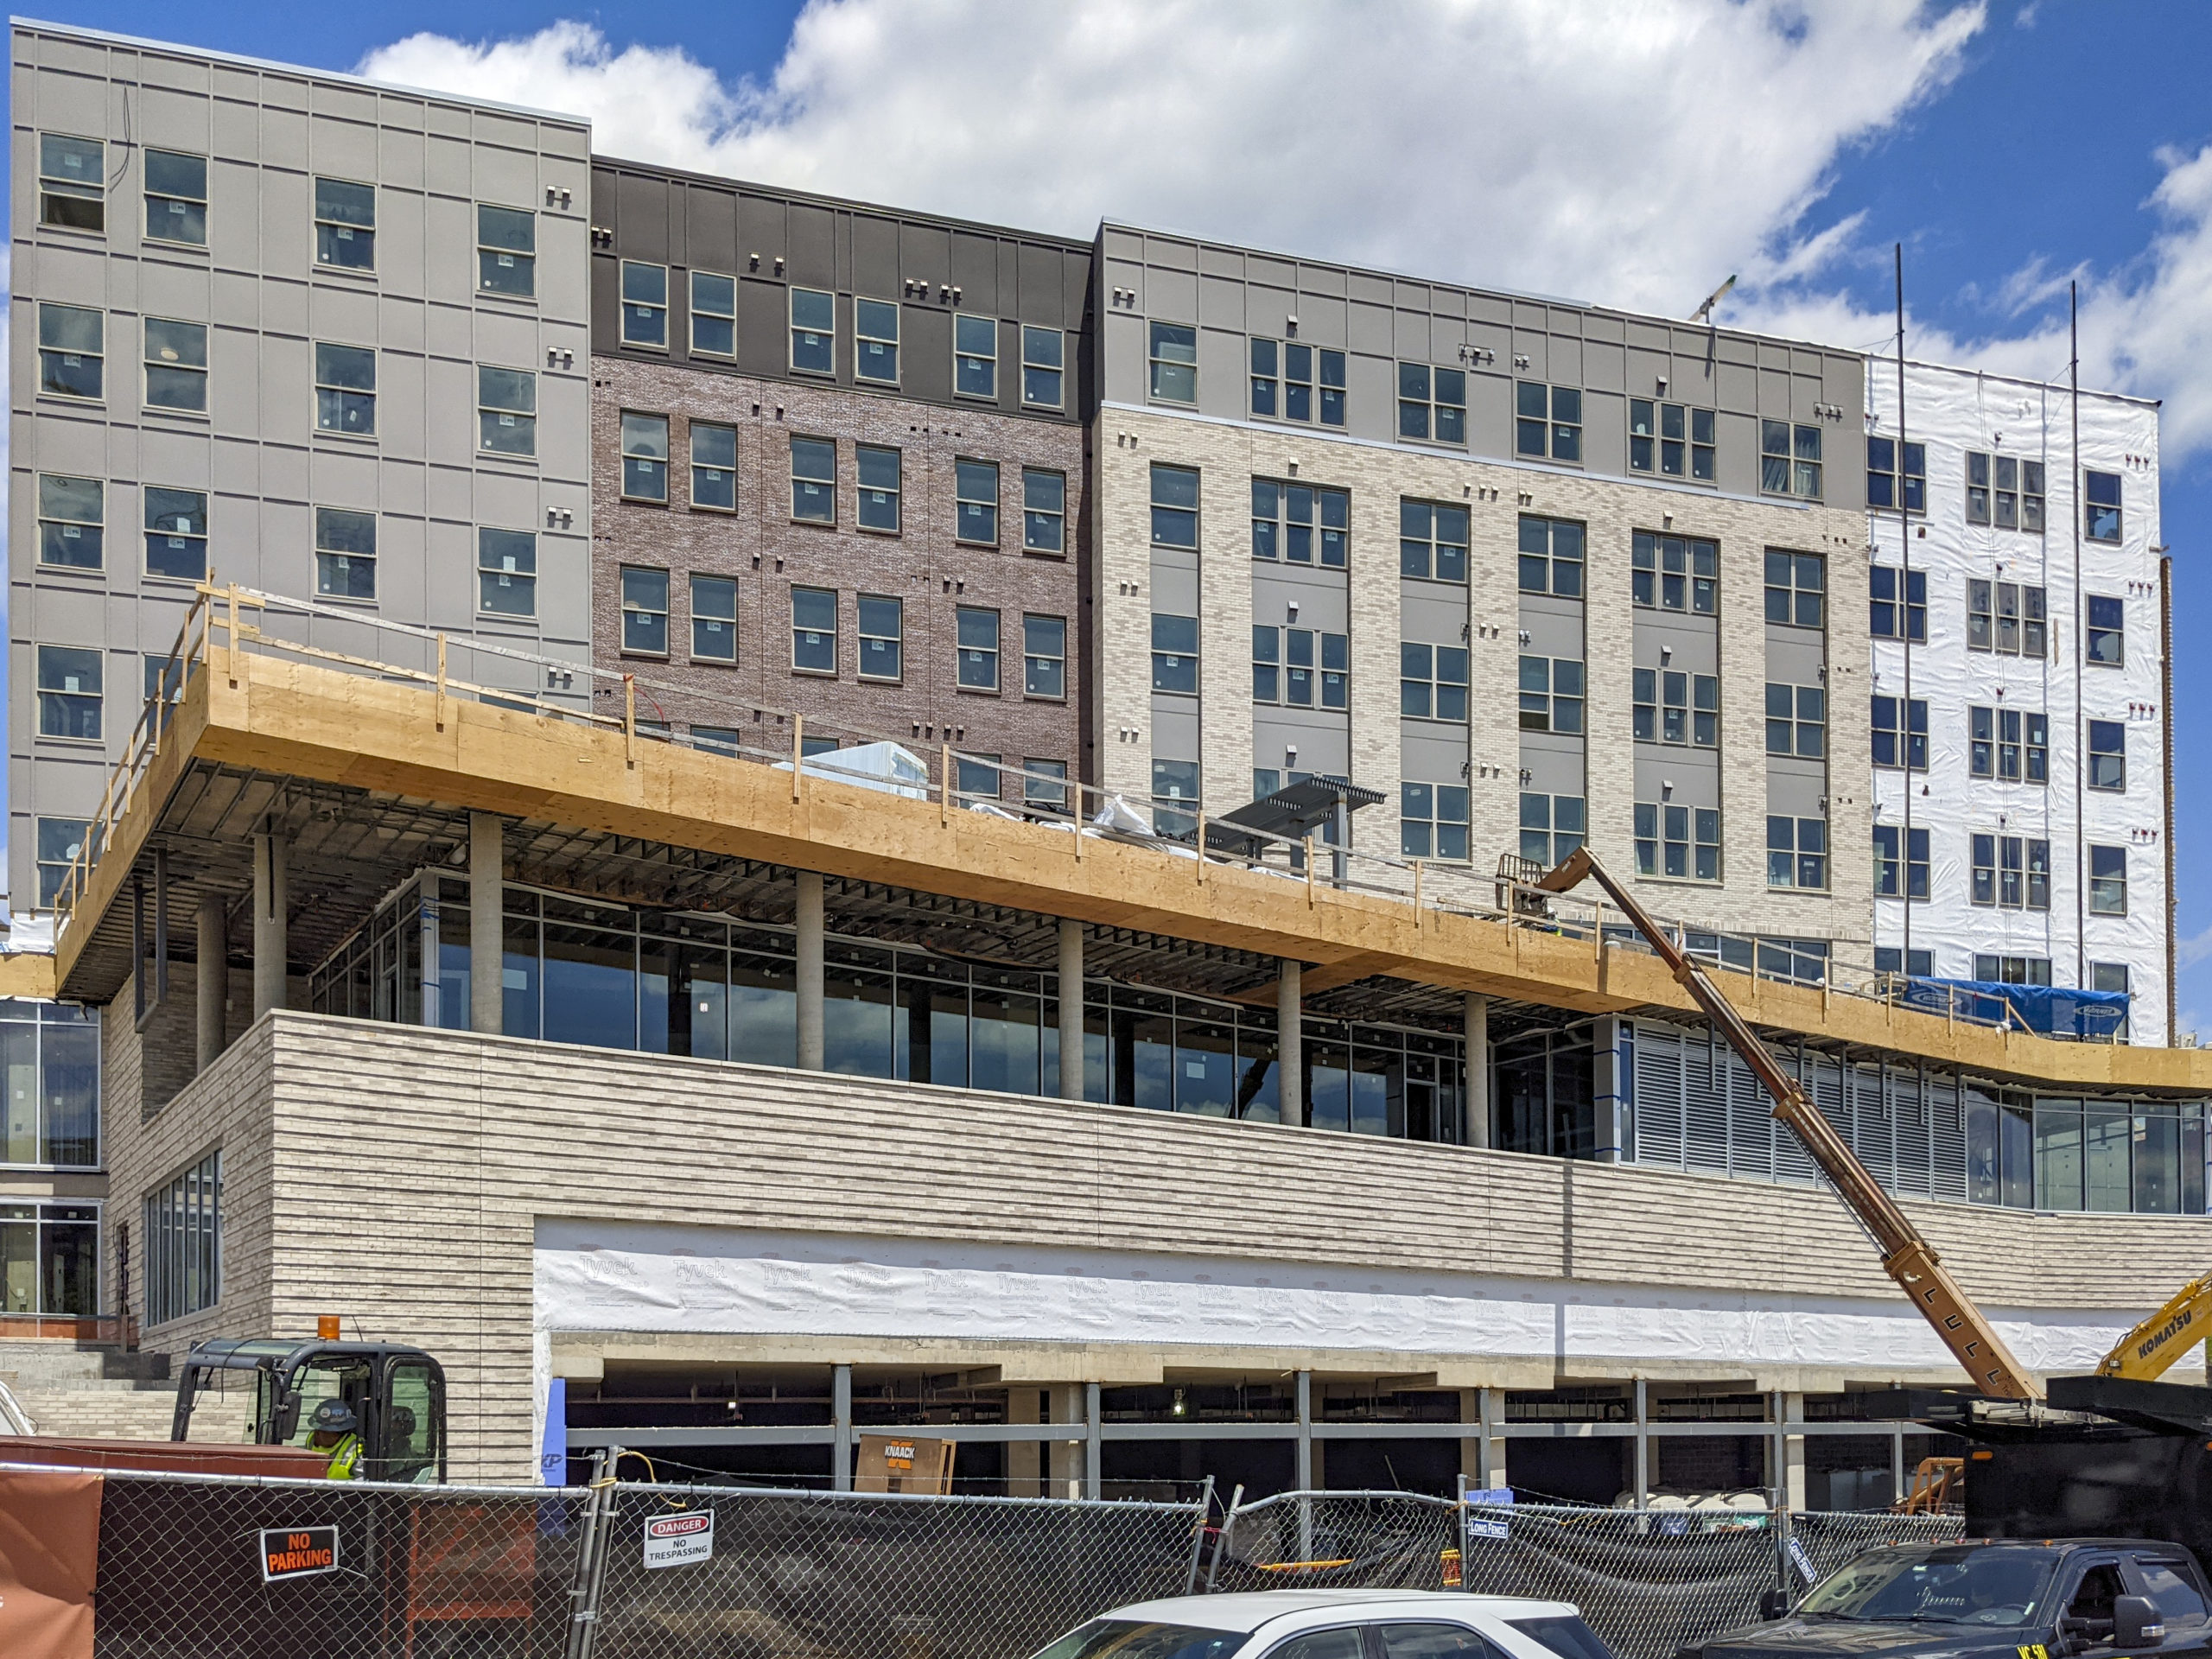 Crossroads at Towson Row Under Construction